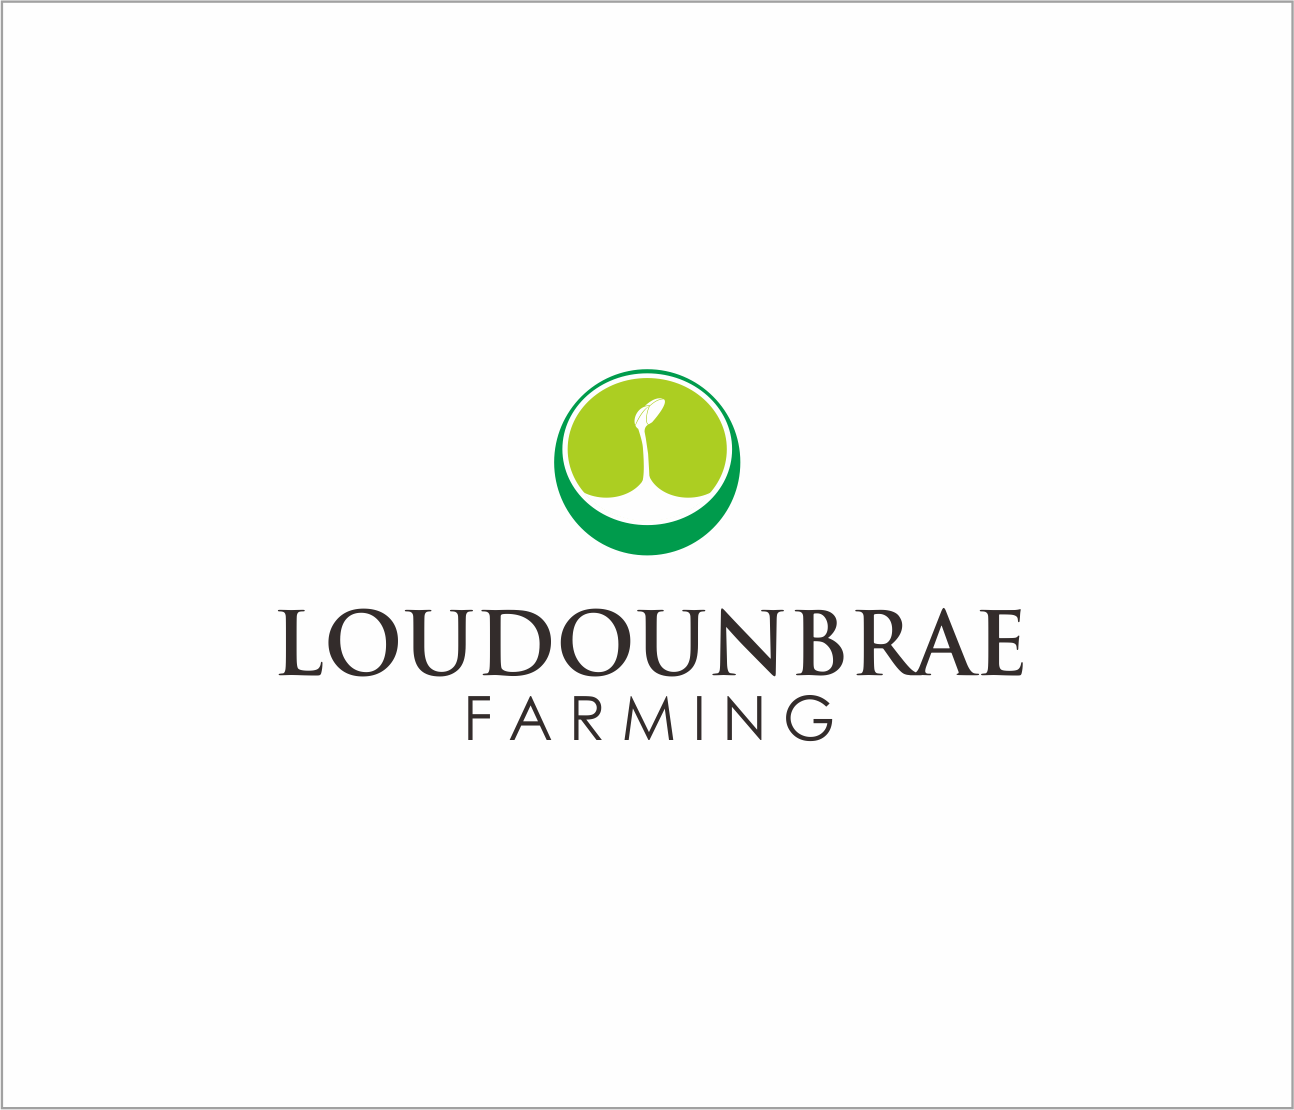 Logo Design by Armada Jamaluddin - Entry No. 72 in the Logo Design Contest Creative Logo Design for Loudounbrae Farming.